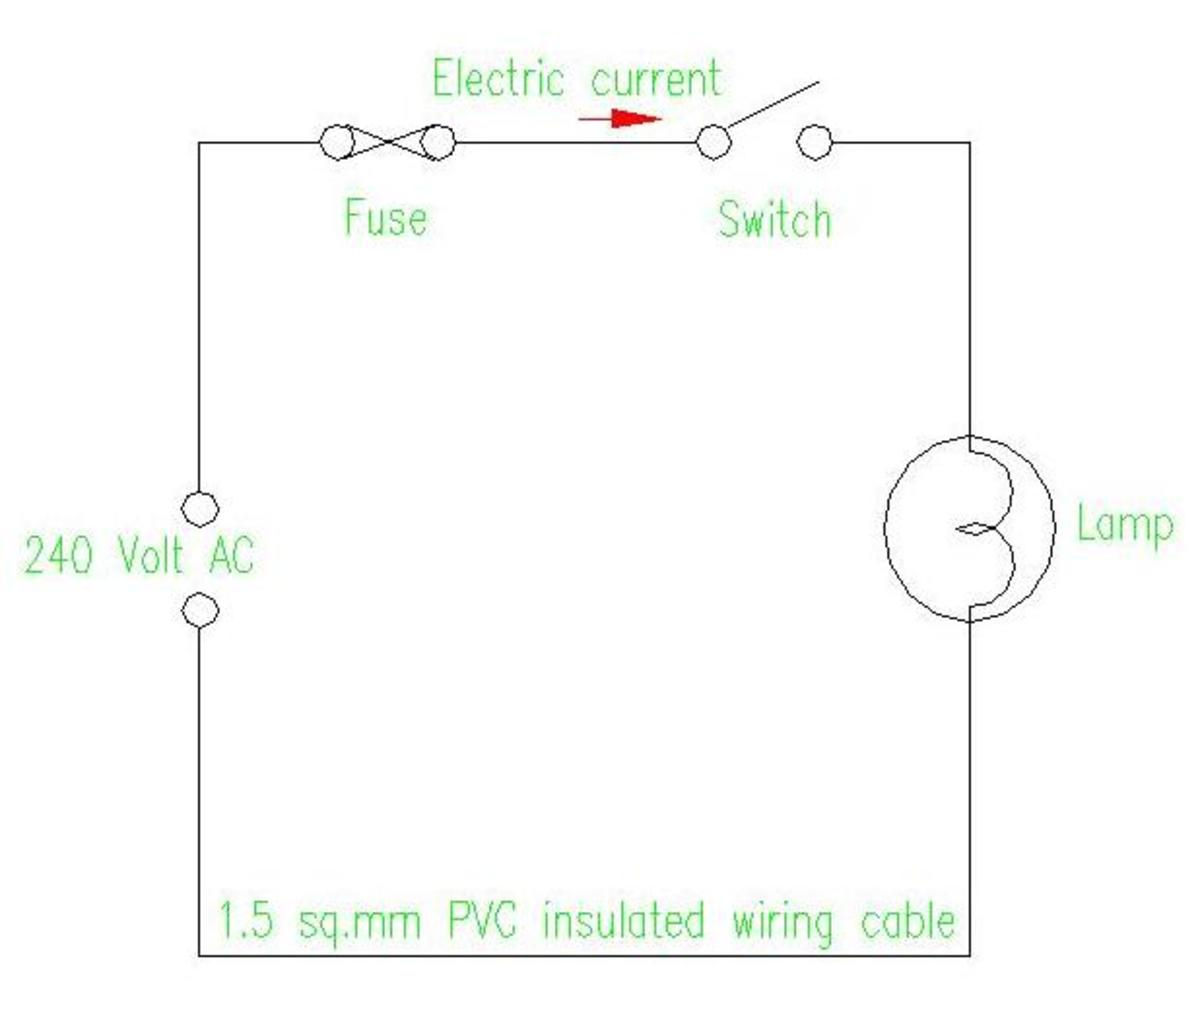 fuse switch wiring diagram internal telephone extension house electric panel pictures dengarden 3 the most basic principle of electrical power